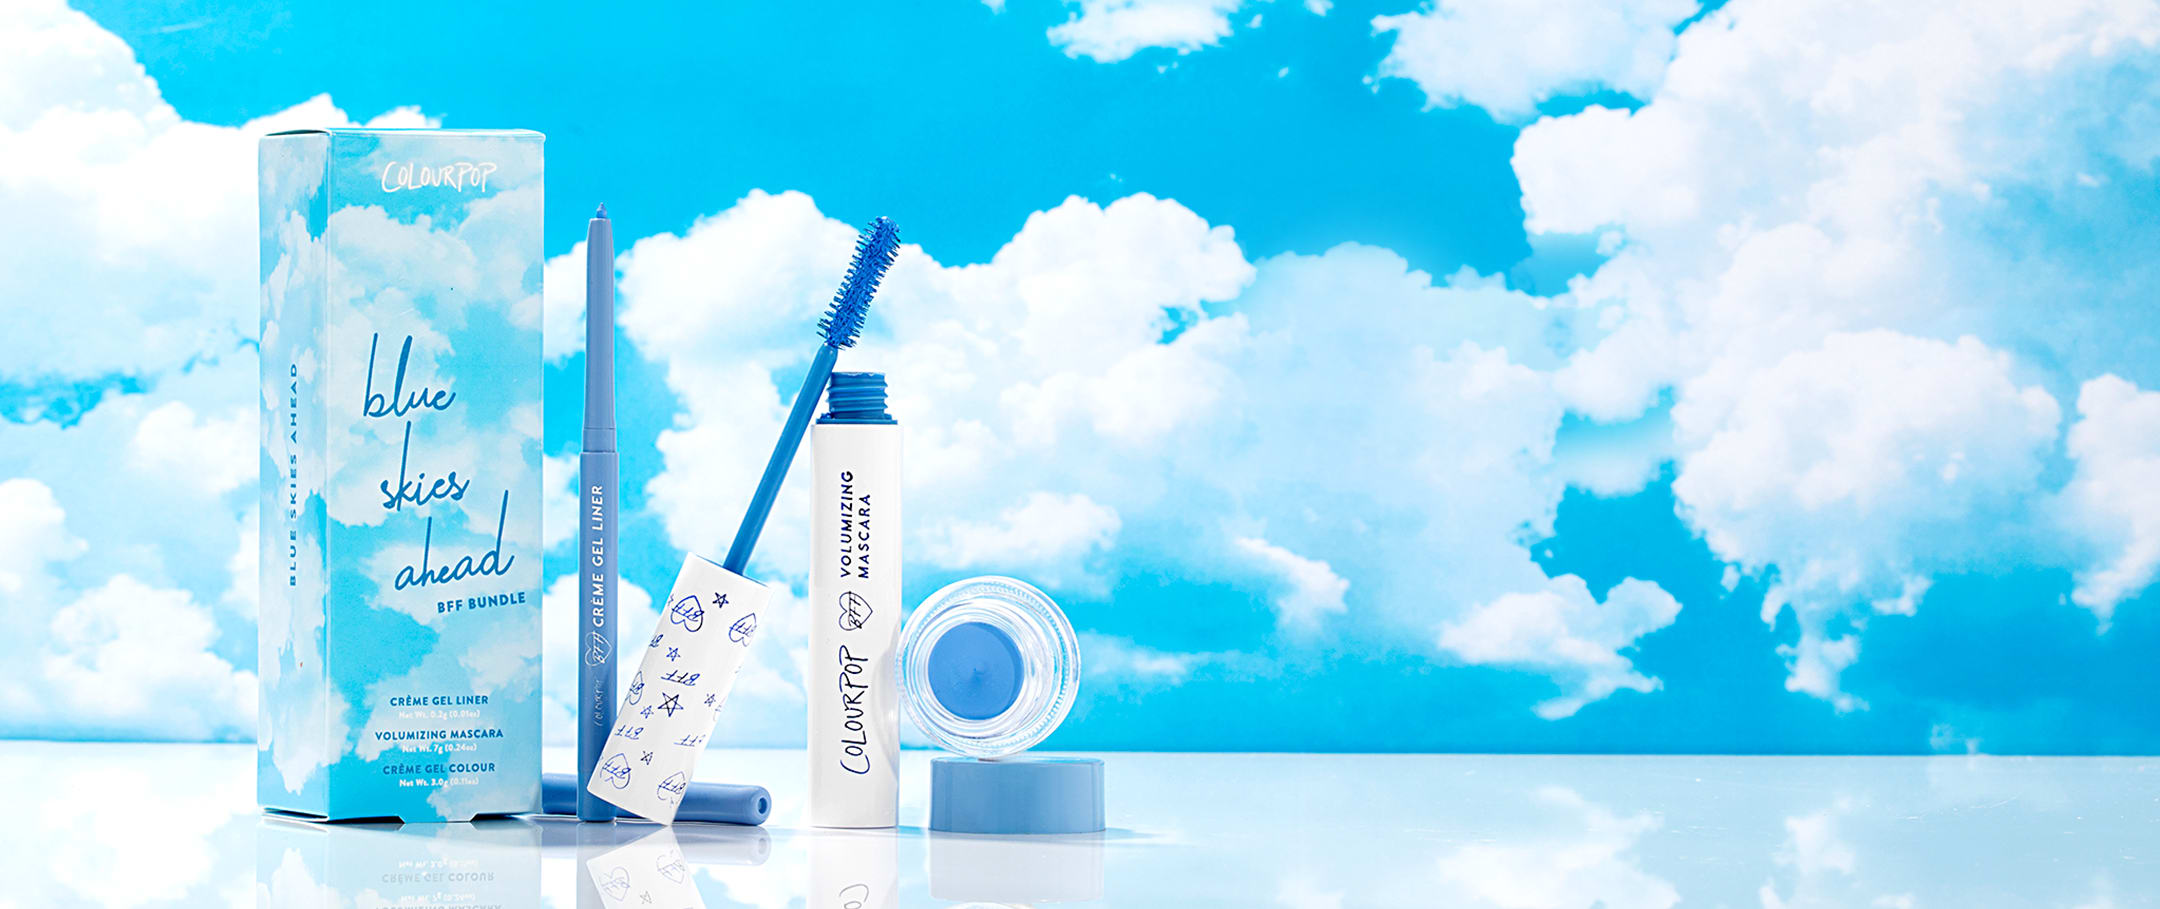 Let's touch the sky with the new Periwinkle BFF Bundle Blue Skies Ahead for only $18